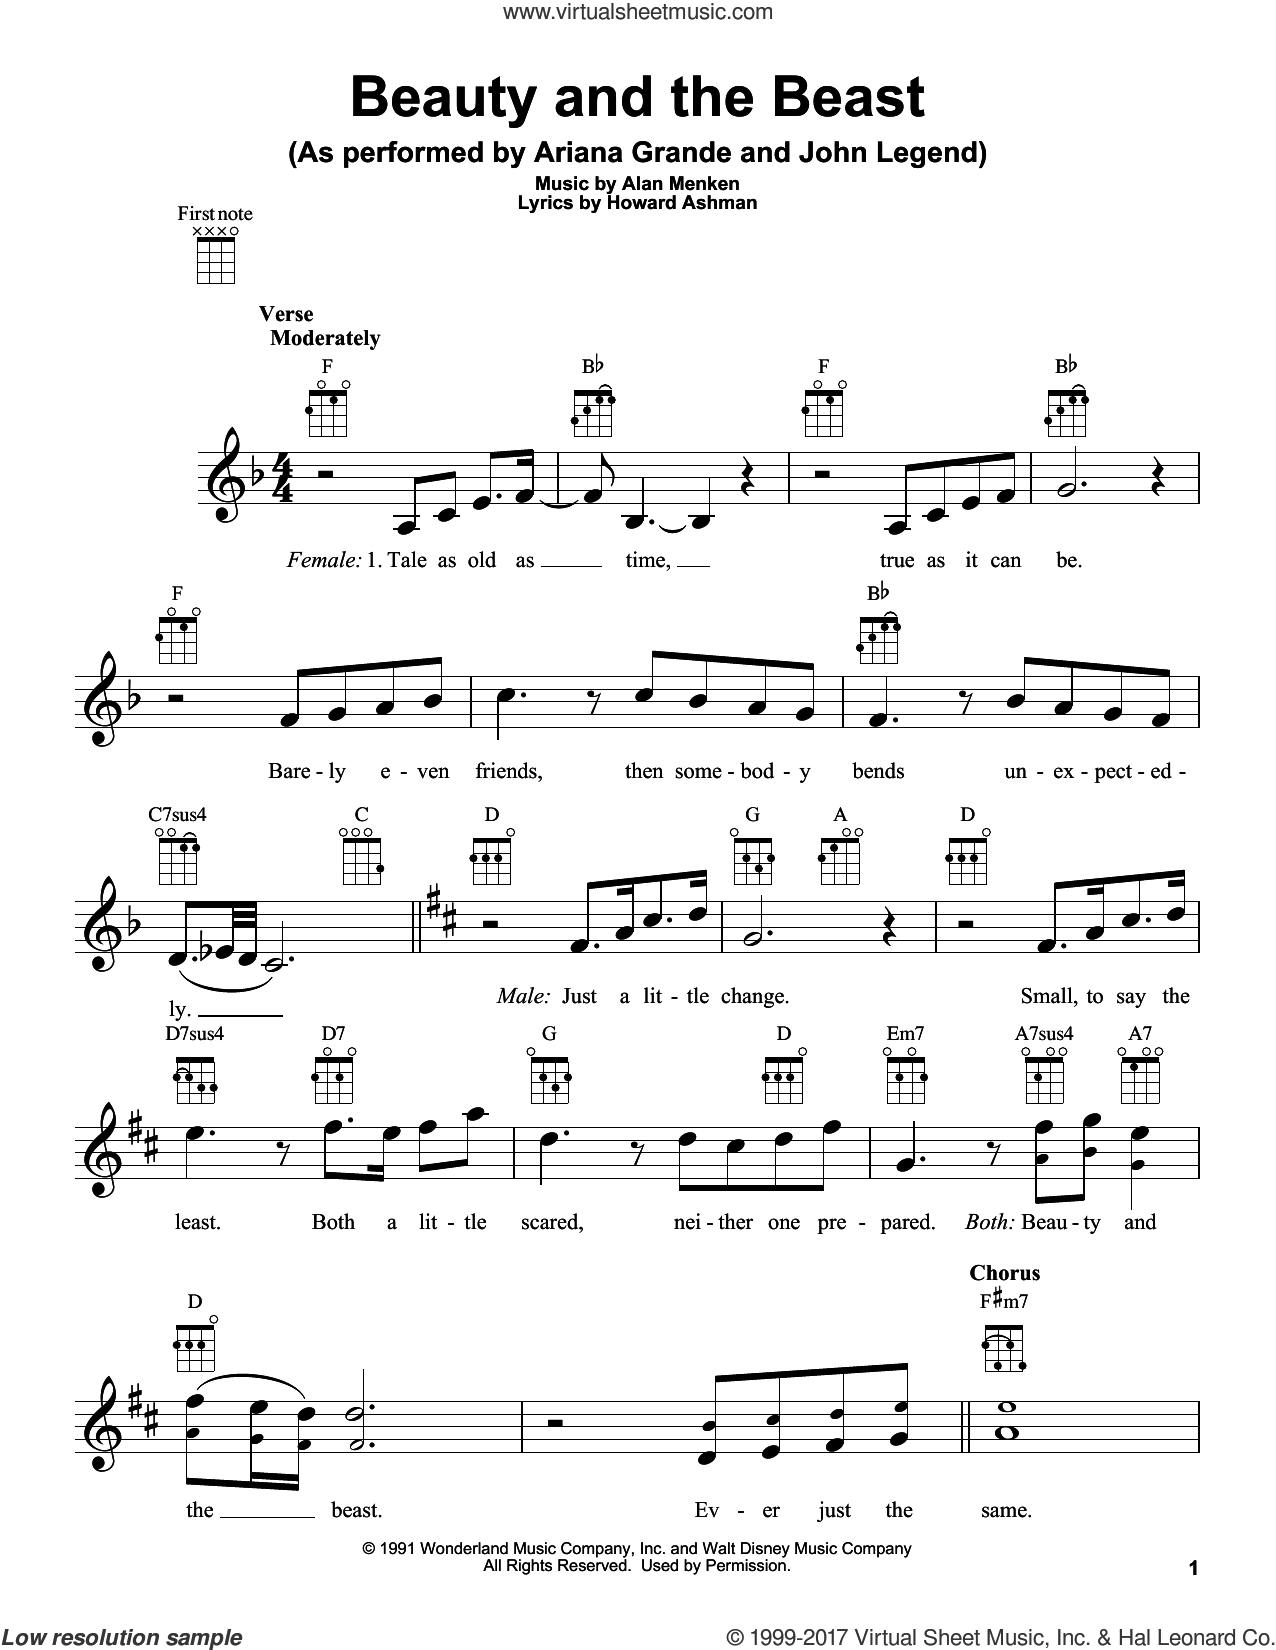 Beauty And The Beast sheet music for ukulele by Ariana Grande & John Legend, Beauty and the Beast Cast, Tim Rice, Alan Menken and Howard Ashman, intermediate skill level